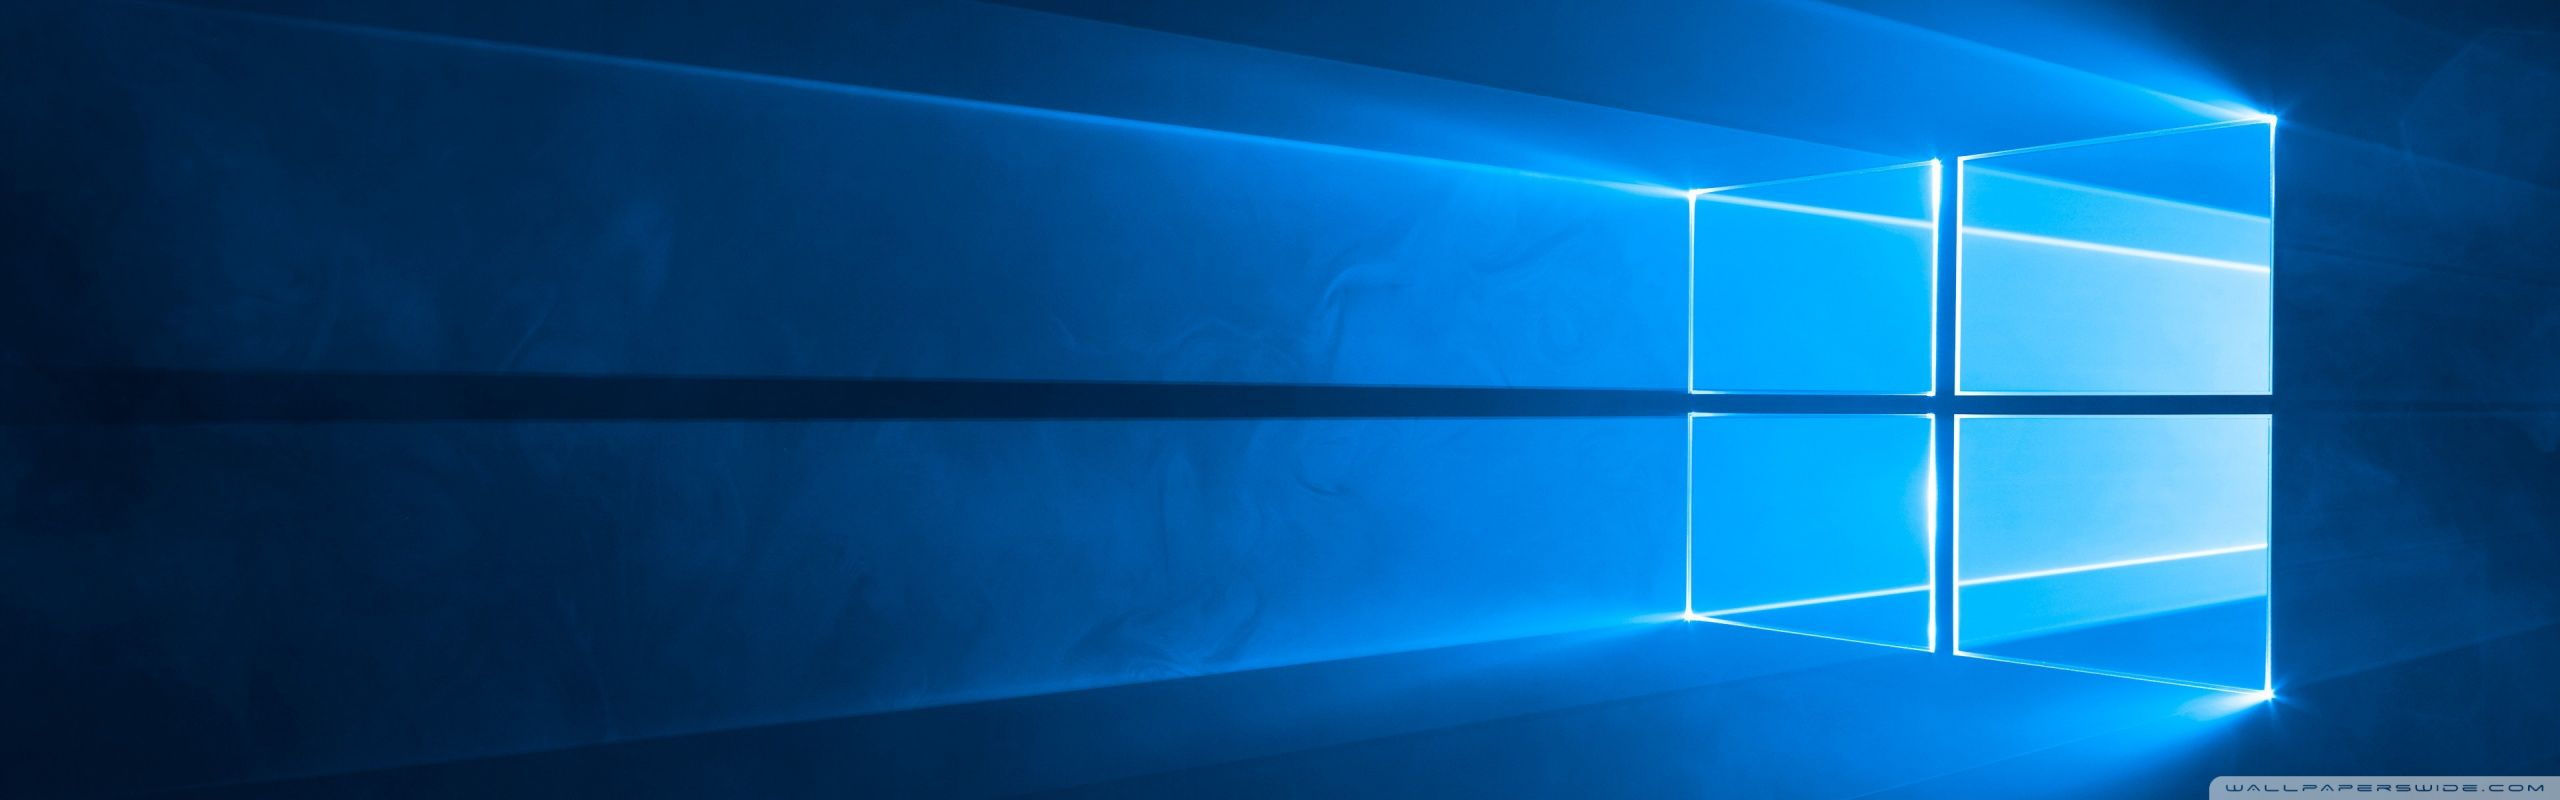 How To Set A Different Wallpaper On Each Monitor In Windows 10 Windows 10 Things Windows 10